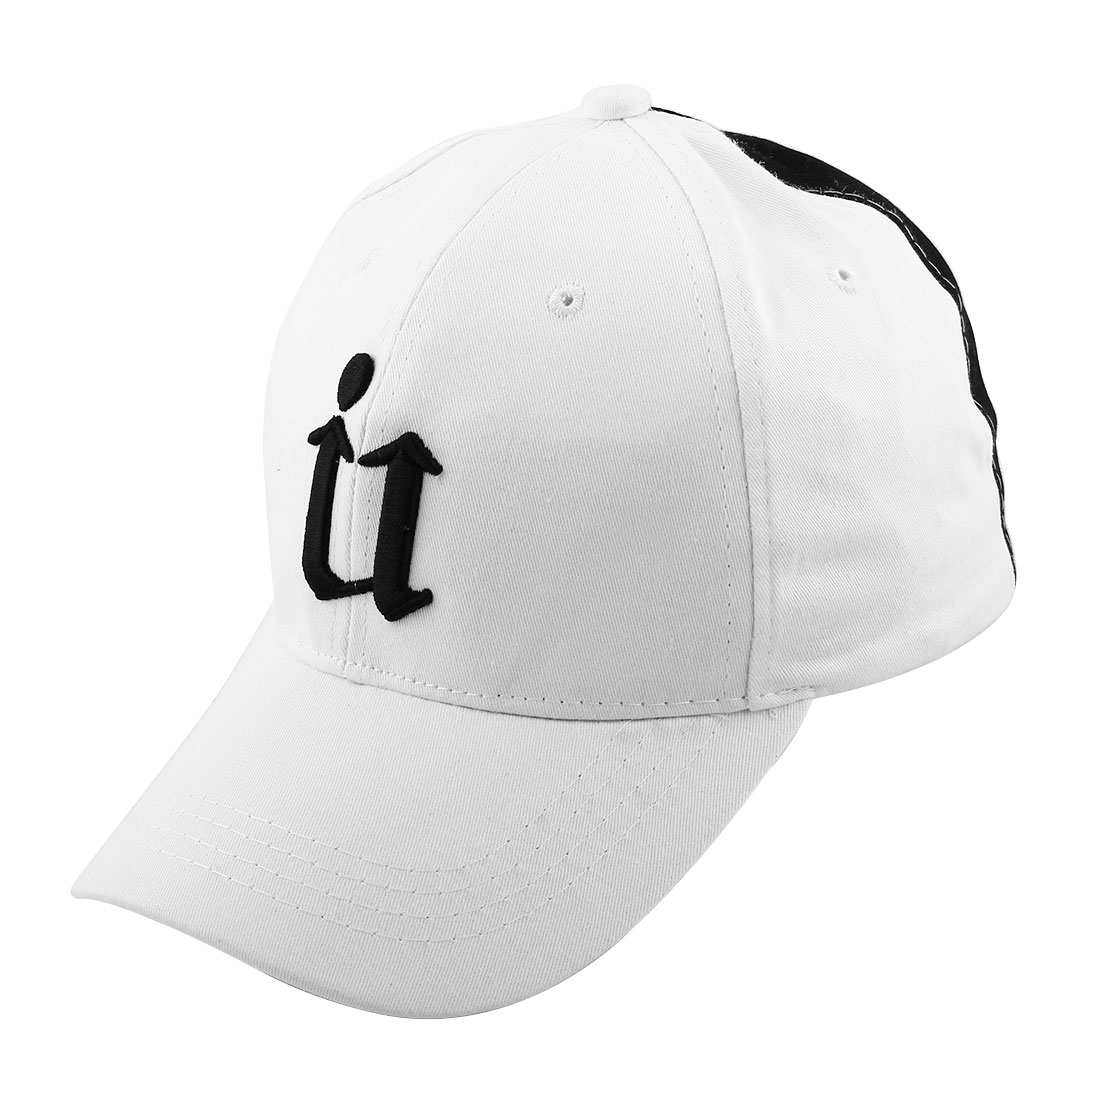 Spring Summer Cotton Blends Letter Pattern 5 Panel Adjustable Loop Baseball Cap Portable Golf Hat White